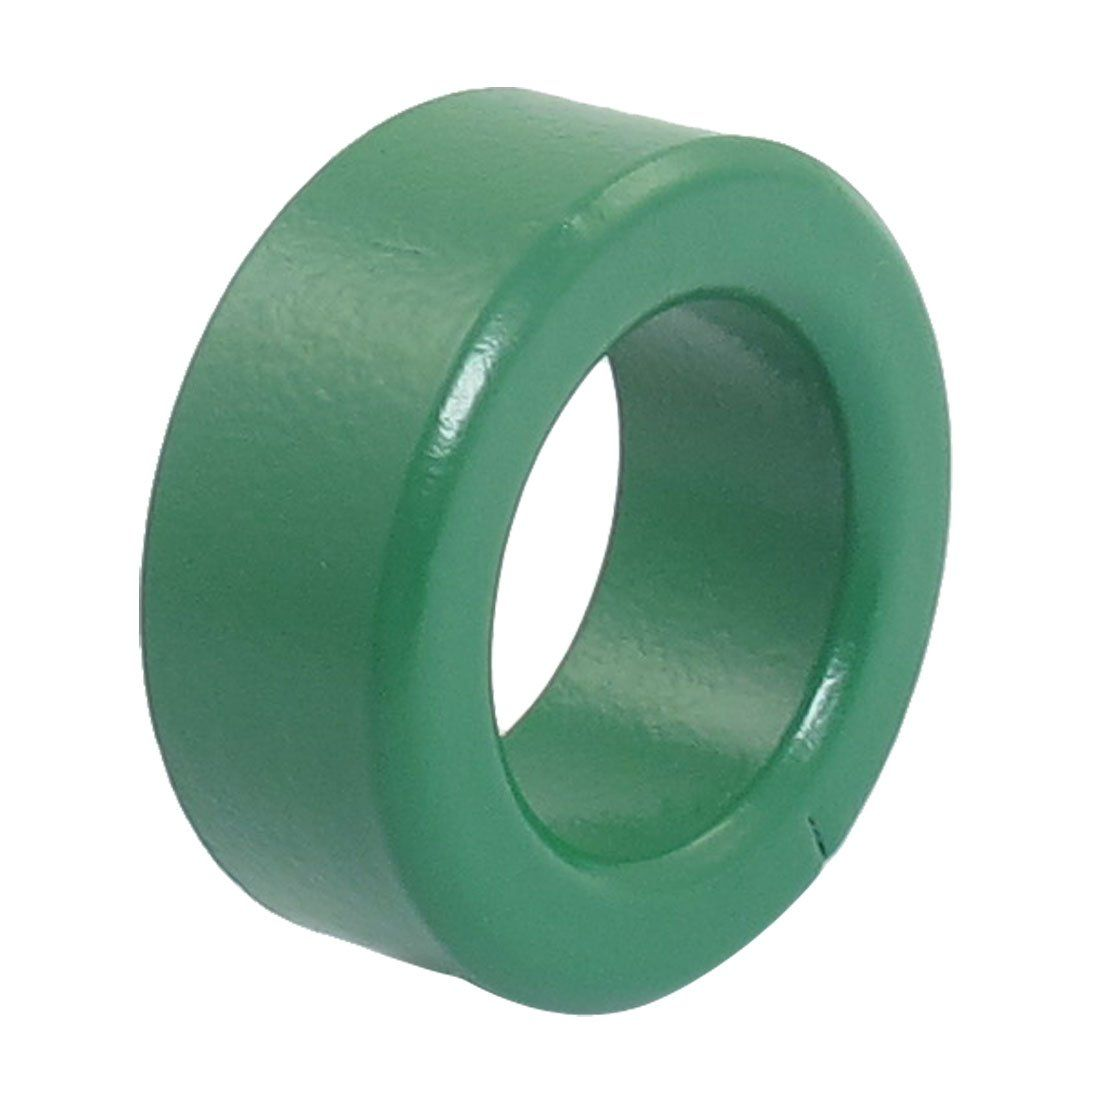 36mm Outside Dia Green Iron Inductor Coils Toroid Ferrite Cores